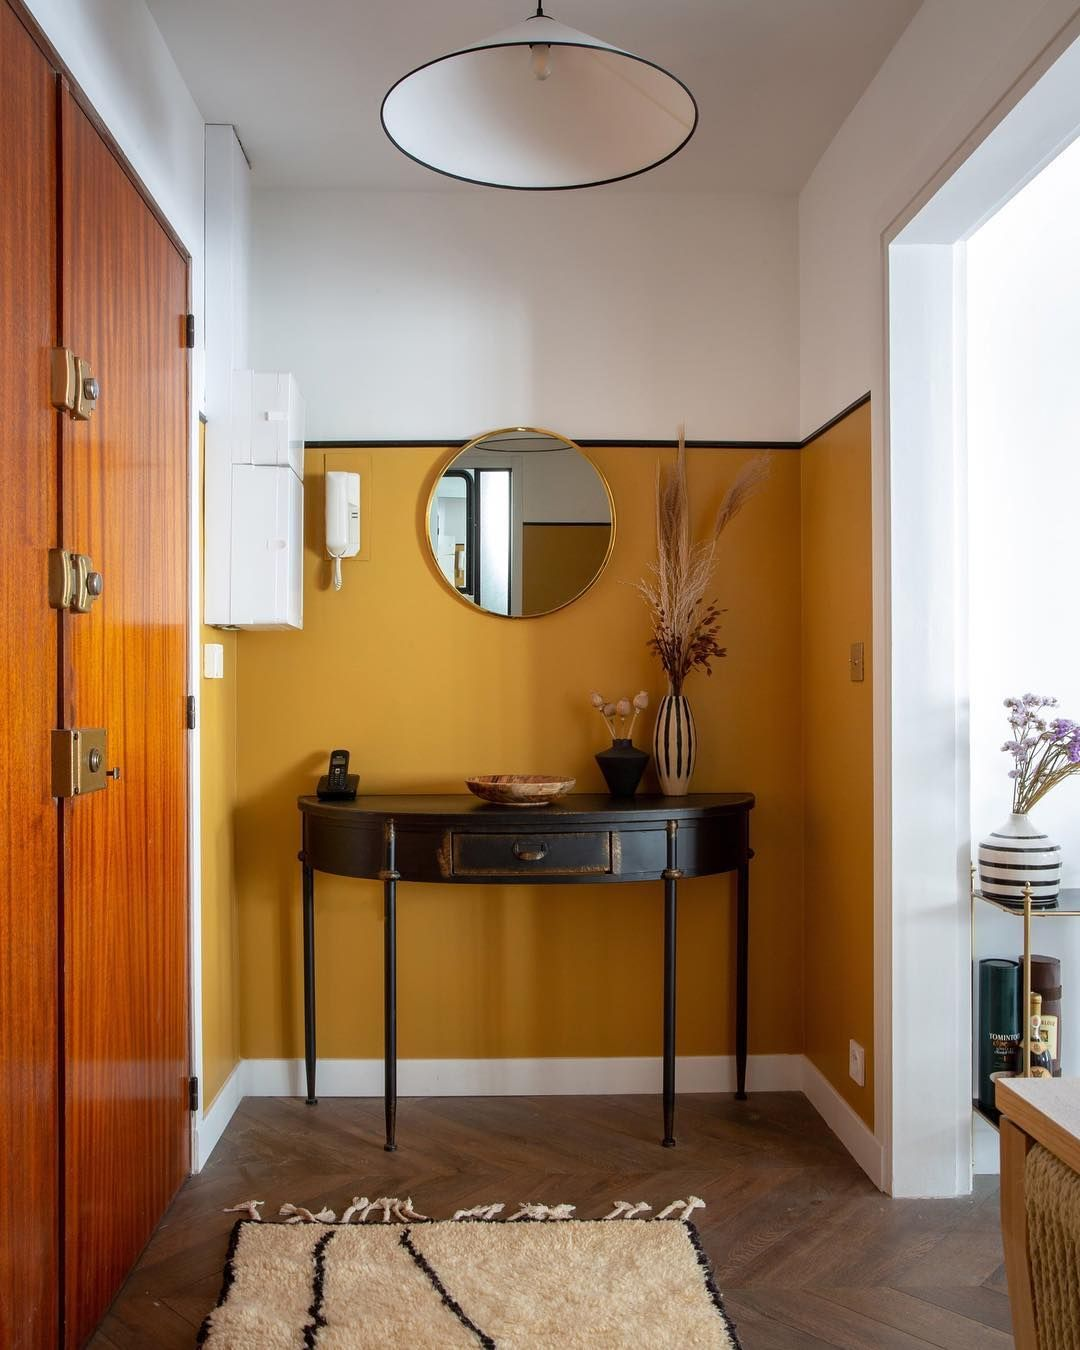 Apartment therapy on instagram this newly renovated paris pied à terre was a labor of love an interior designers ode to her grandfather the original